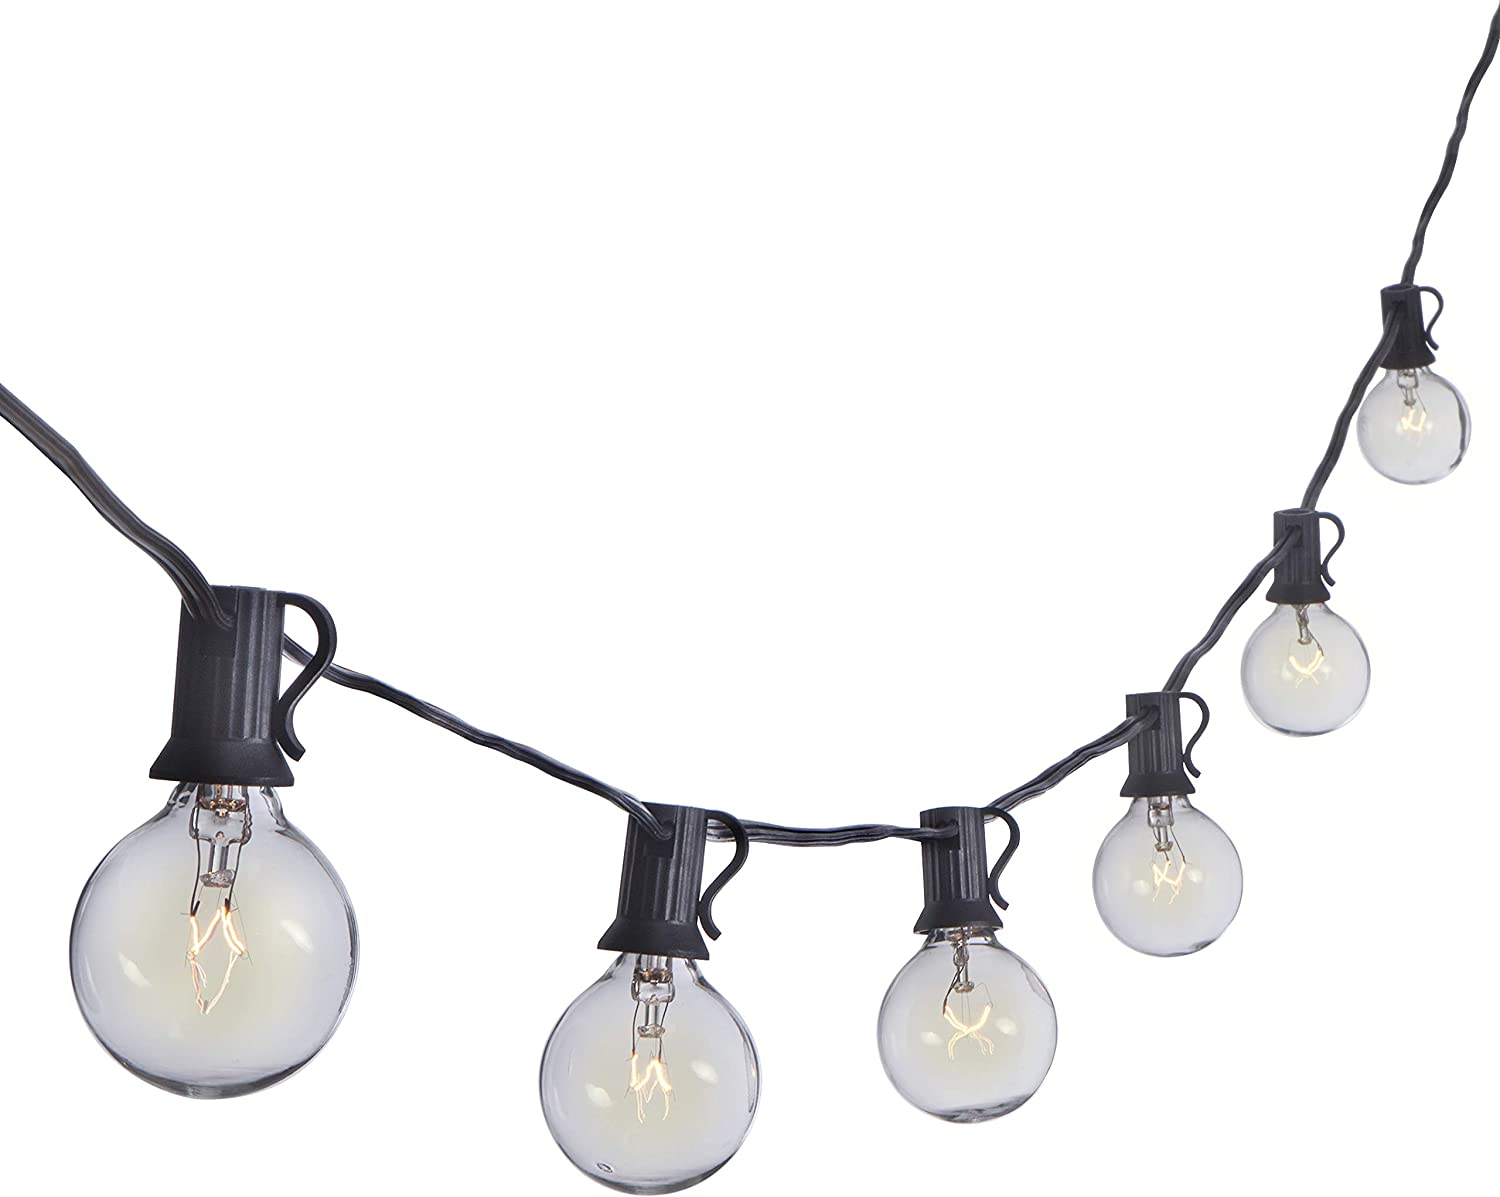 Sterno Home: Clear Globe Dimmable Outdoor Incandescent String Light | 100 Feet! .99 (REG .99) at Woot!